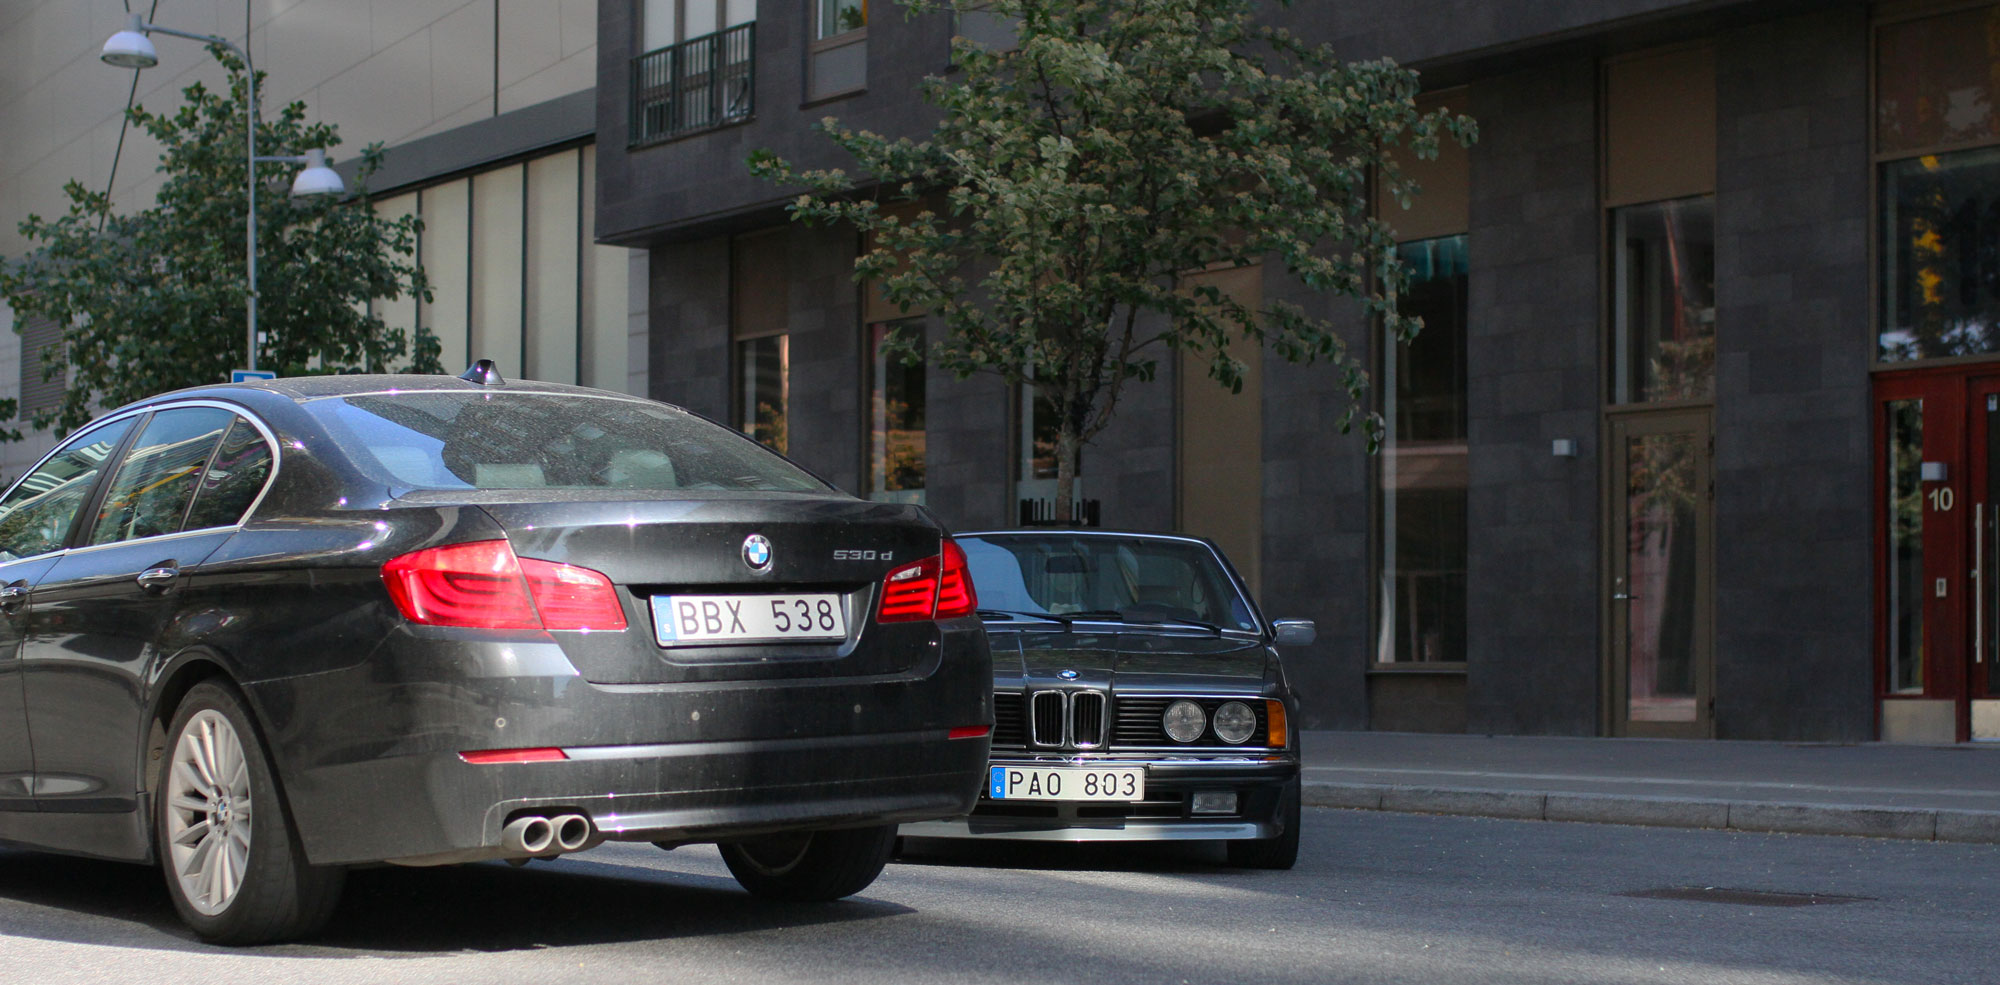 BMW 530 vs BMW 635 - oxen mot city slickern